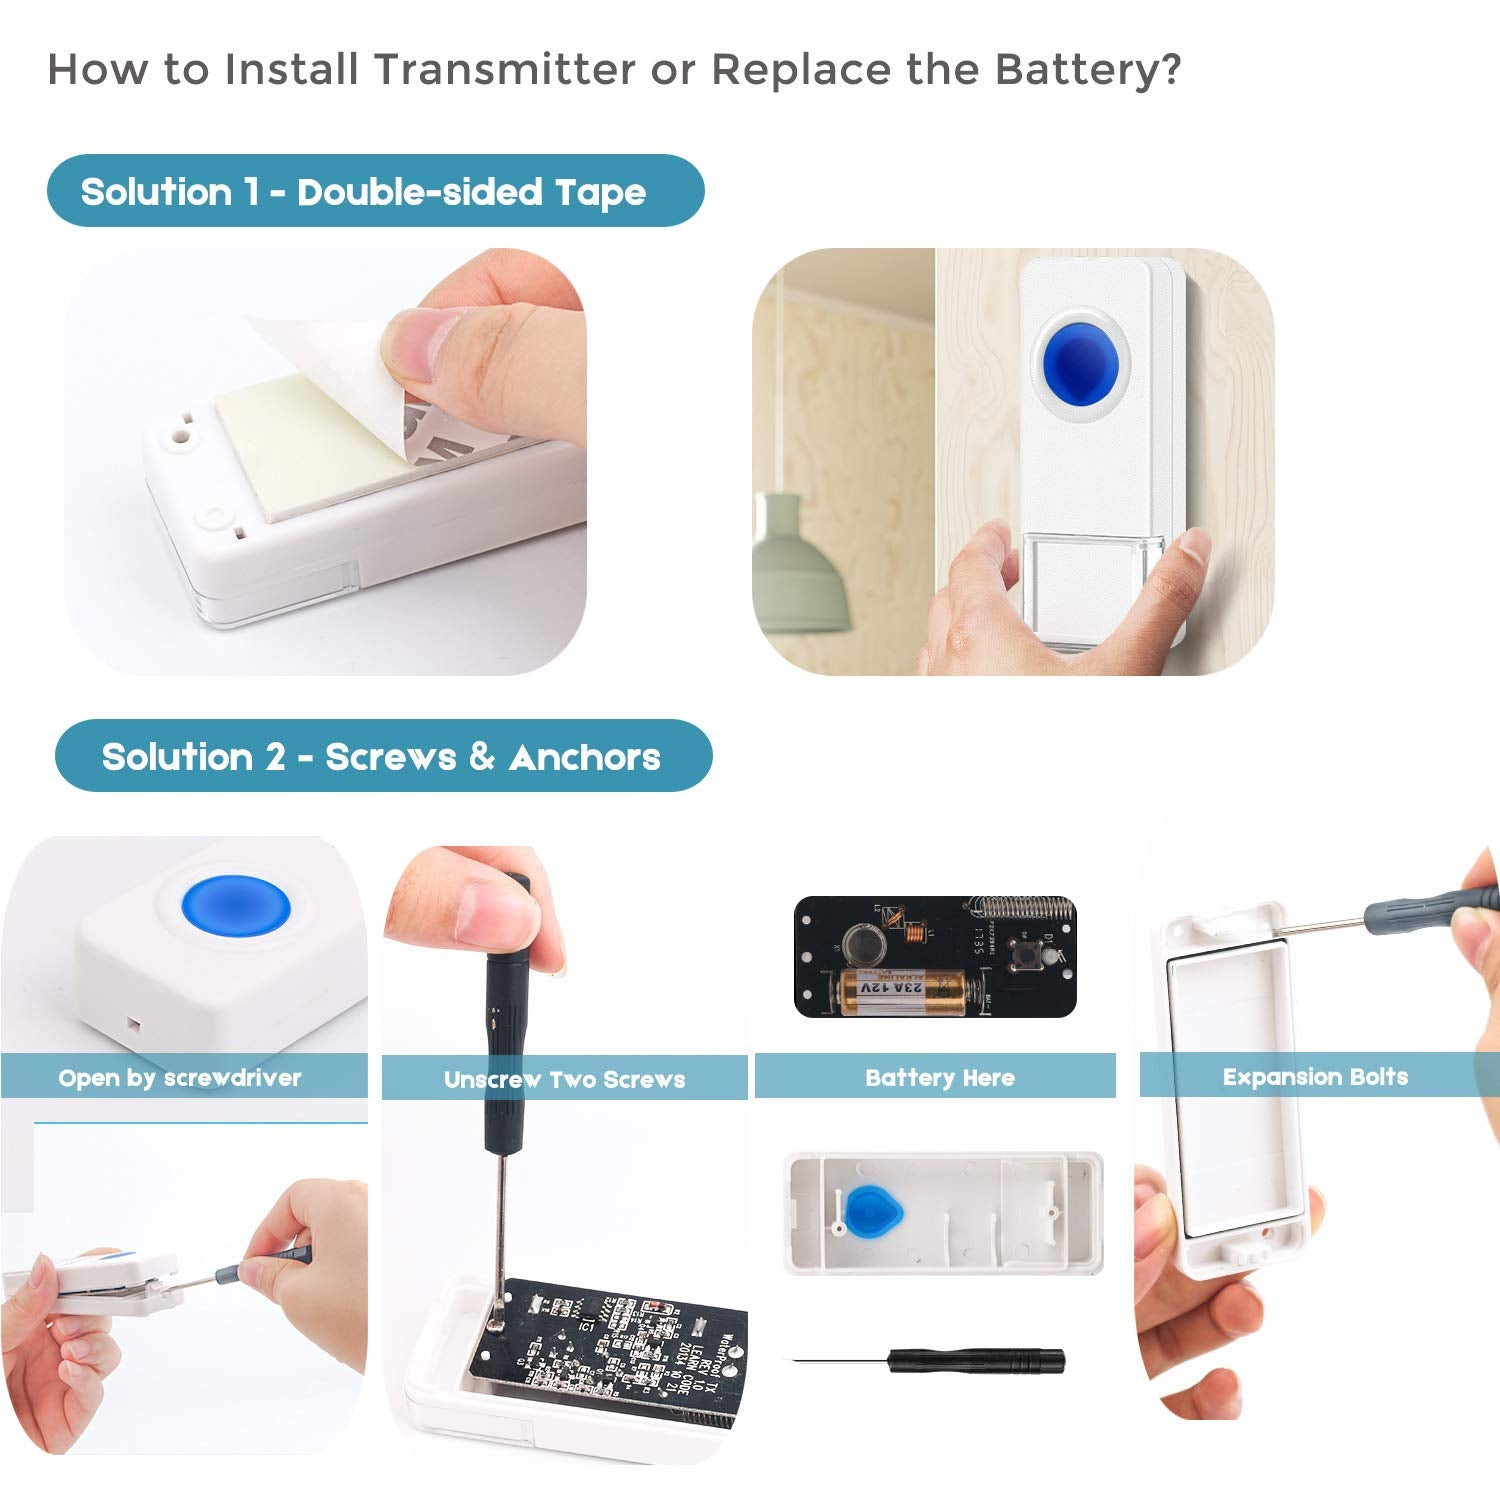 How to Install Transmitter or Replace the Battery?